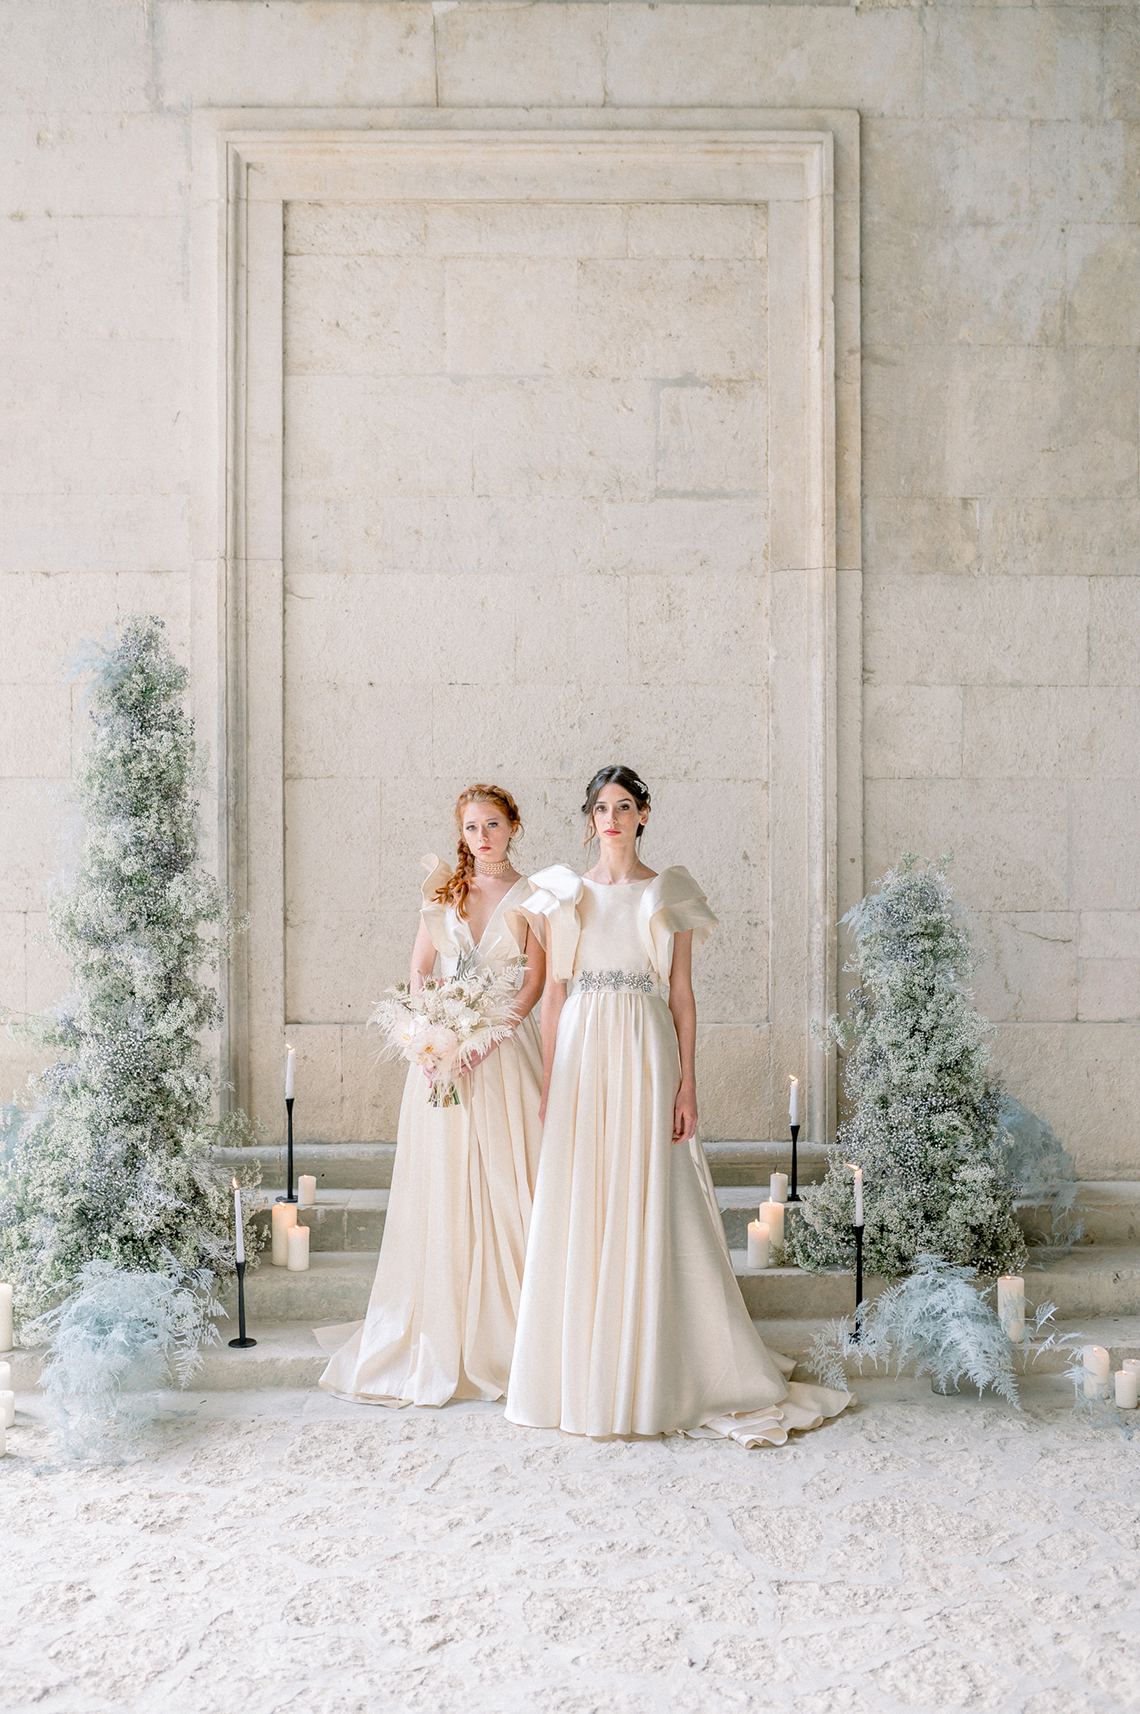 Romantic Same Sex Winter Wedding Inspiration – Francesco Mantino 20